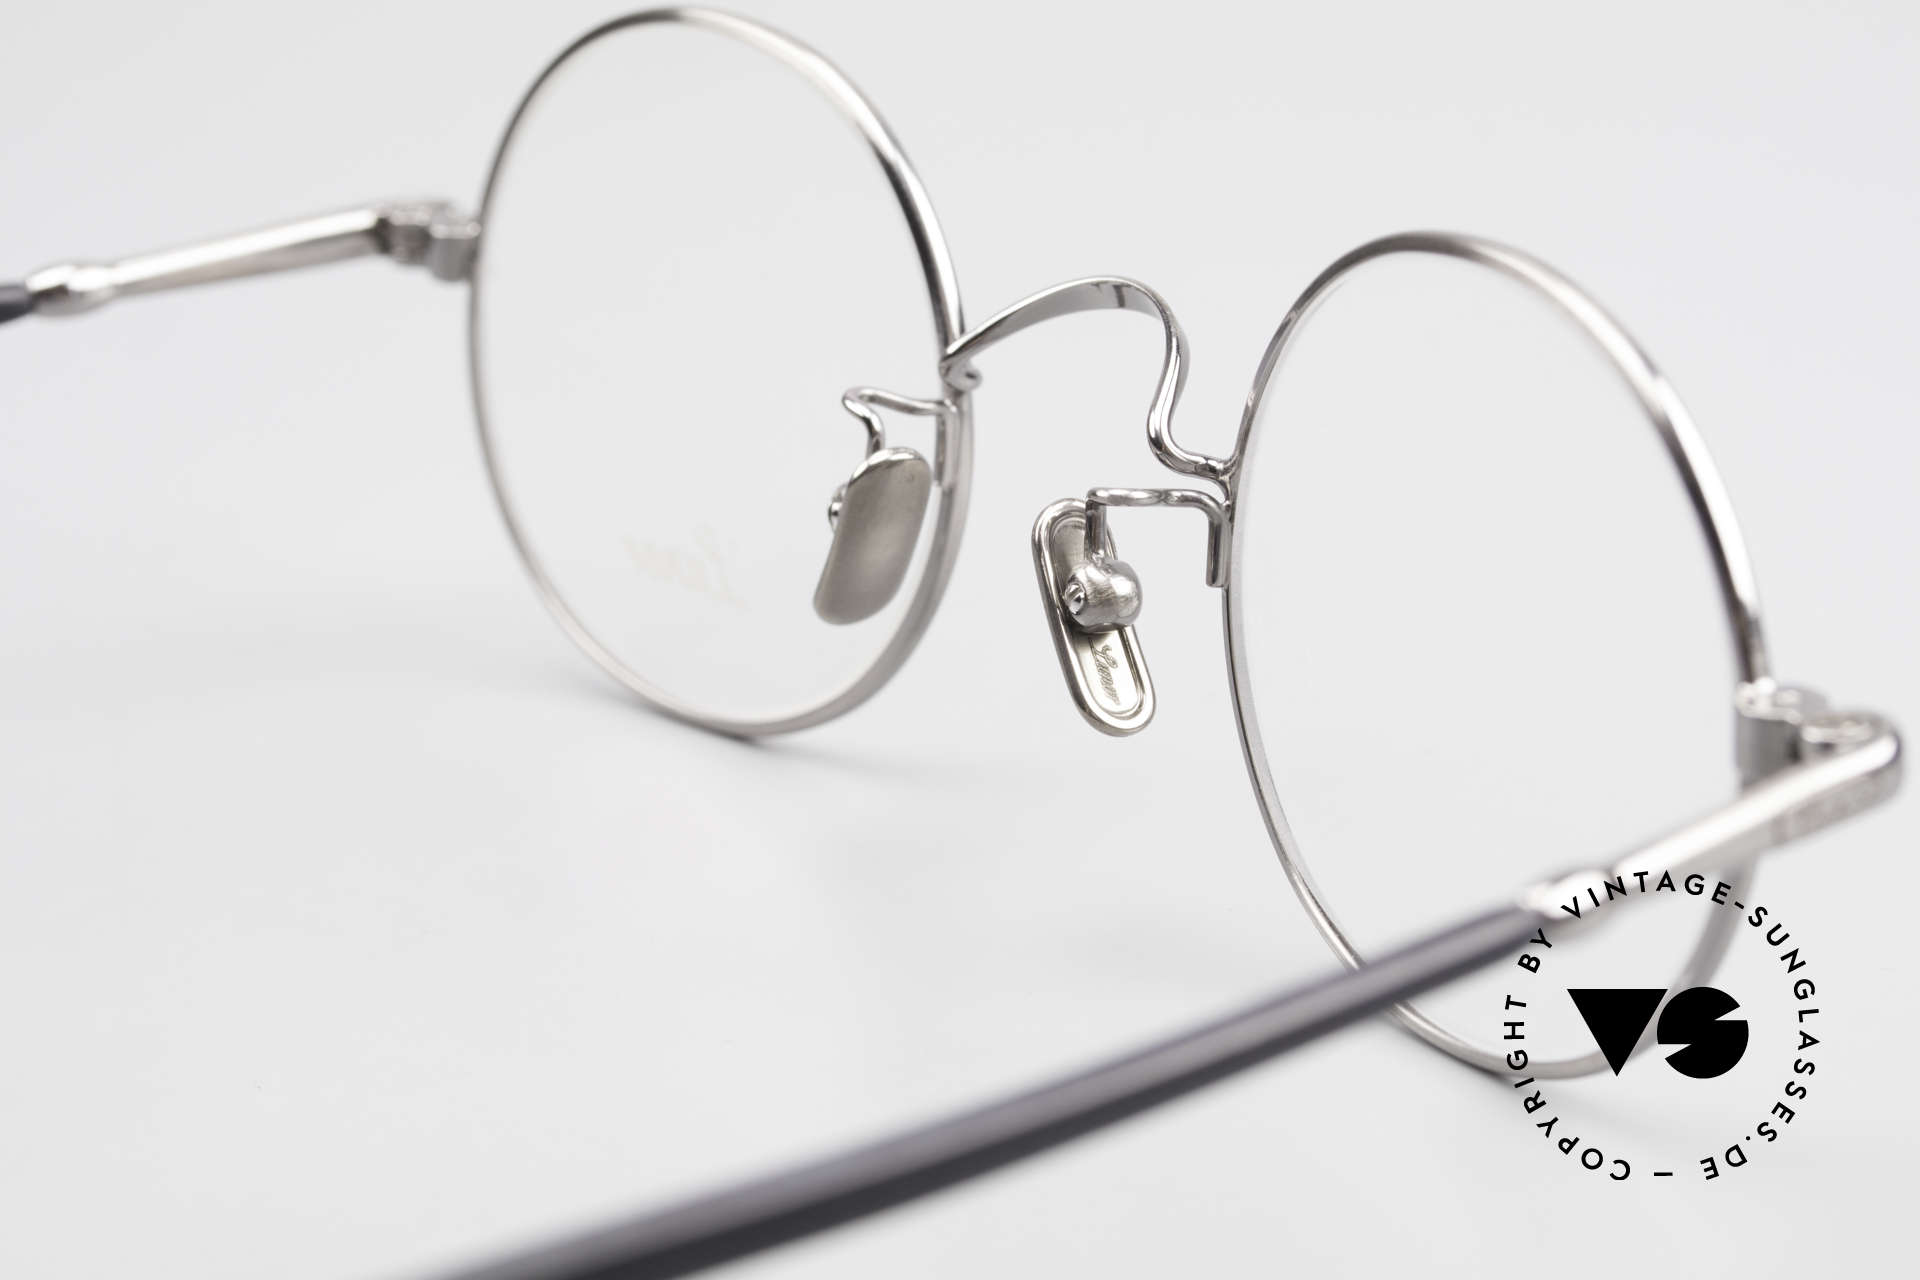 Lunor VA 110 Original Lunor Glasses Round, unworn (like all our vintage eyewear classics by LUNOR), Made for Men and Women